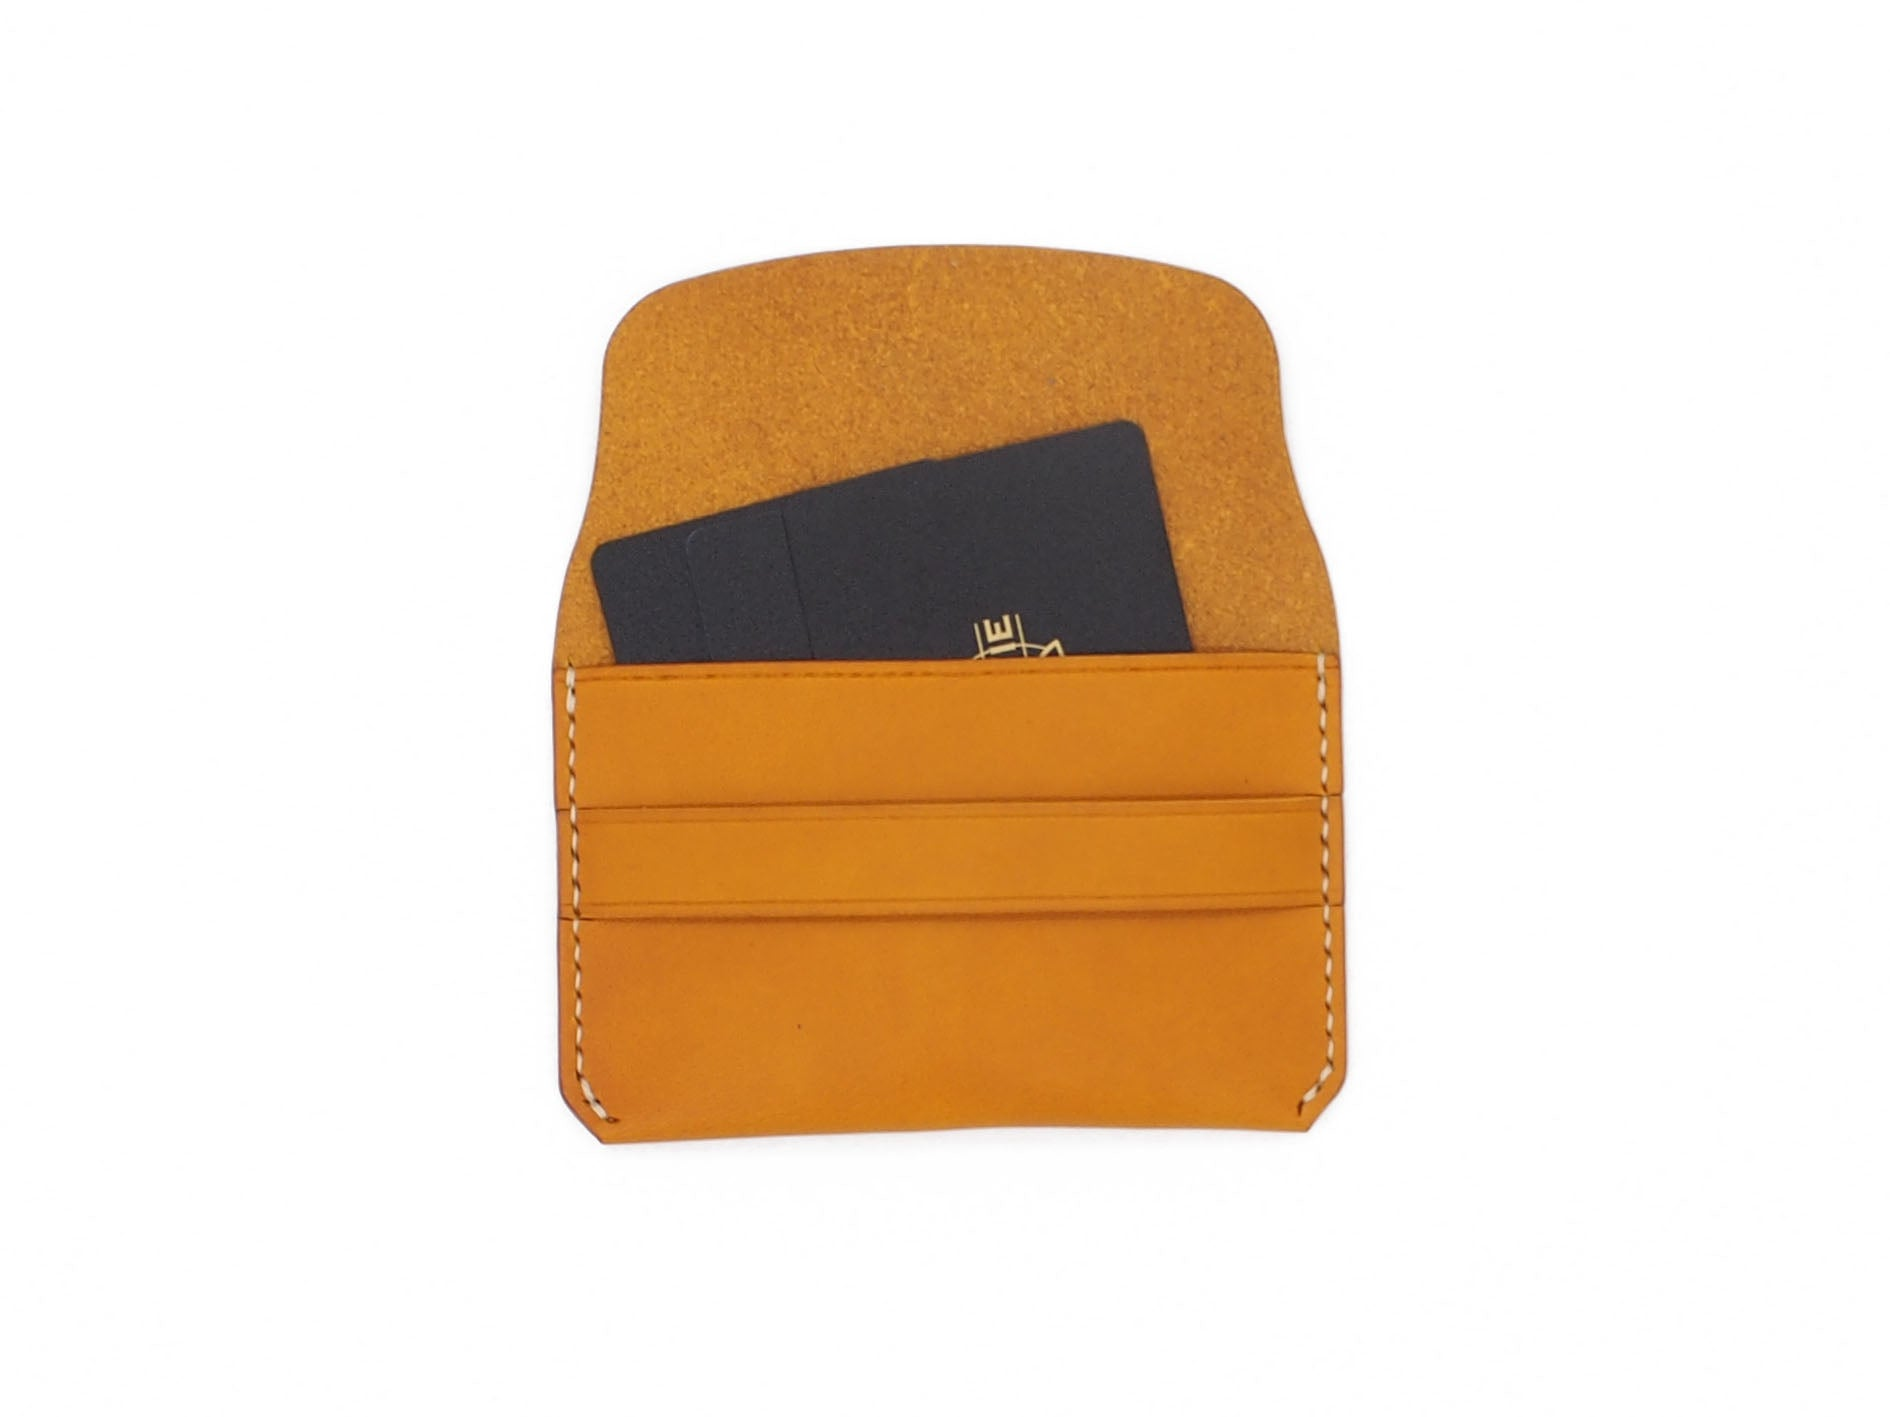 Bodega- Envelope Wallet In Mustard Buttero